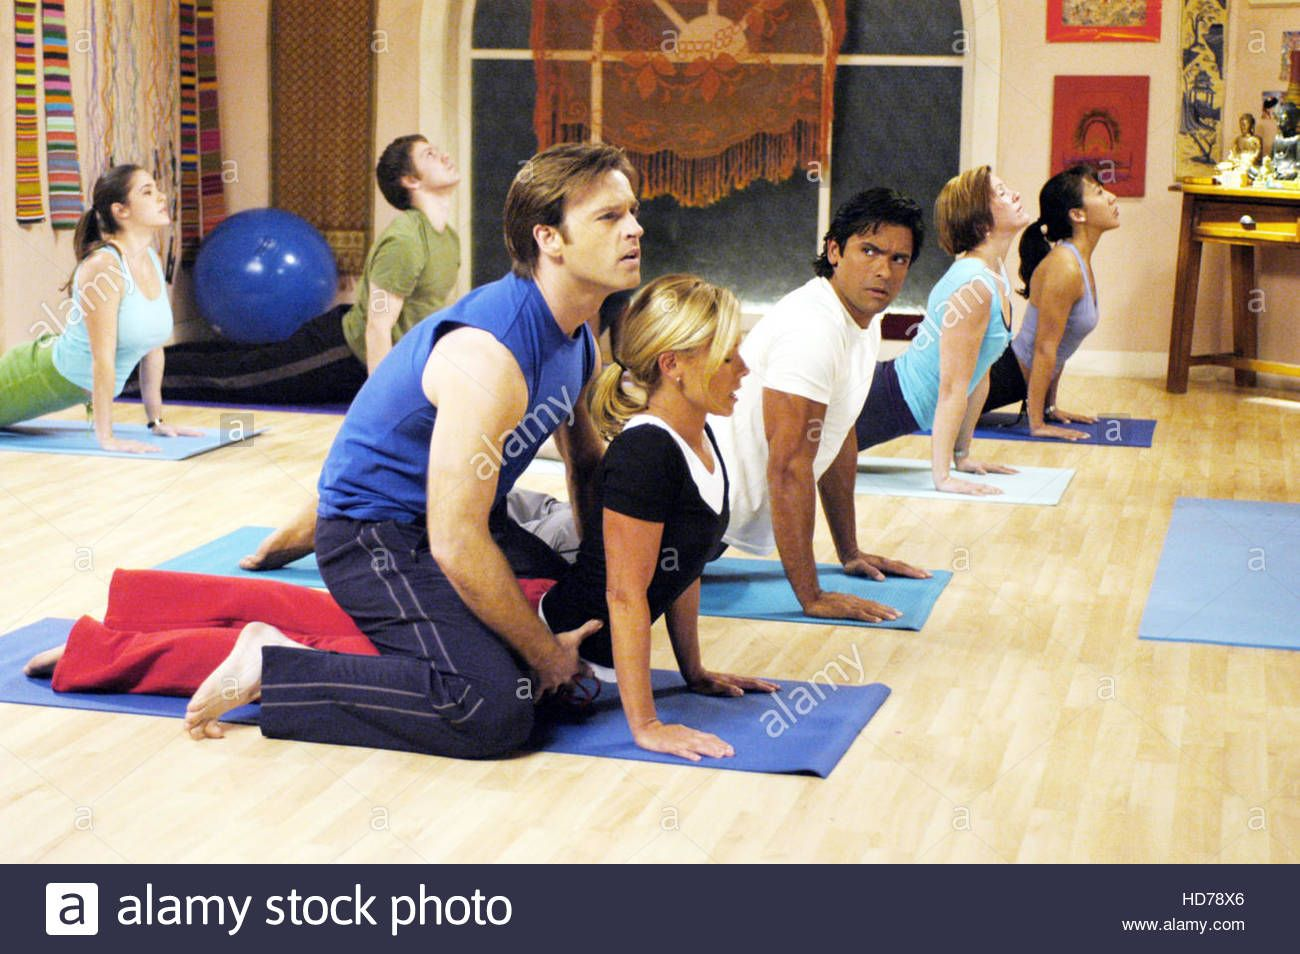 Download this stock image: HOPE AND FAITH, Trevor St. John, Kelly Ripa, Mark Consuelos, 'Zen and Now', (Season 3, aired March 21, 2006), 2003-06, photo: - HD78X6 from Alamy's library of millions of high resolution stock photos, illustrations and vectors.